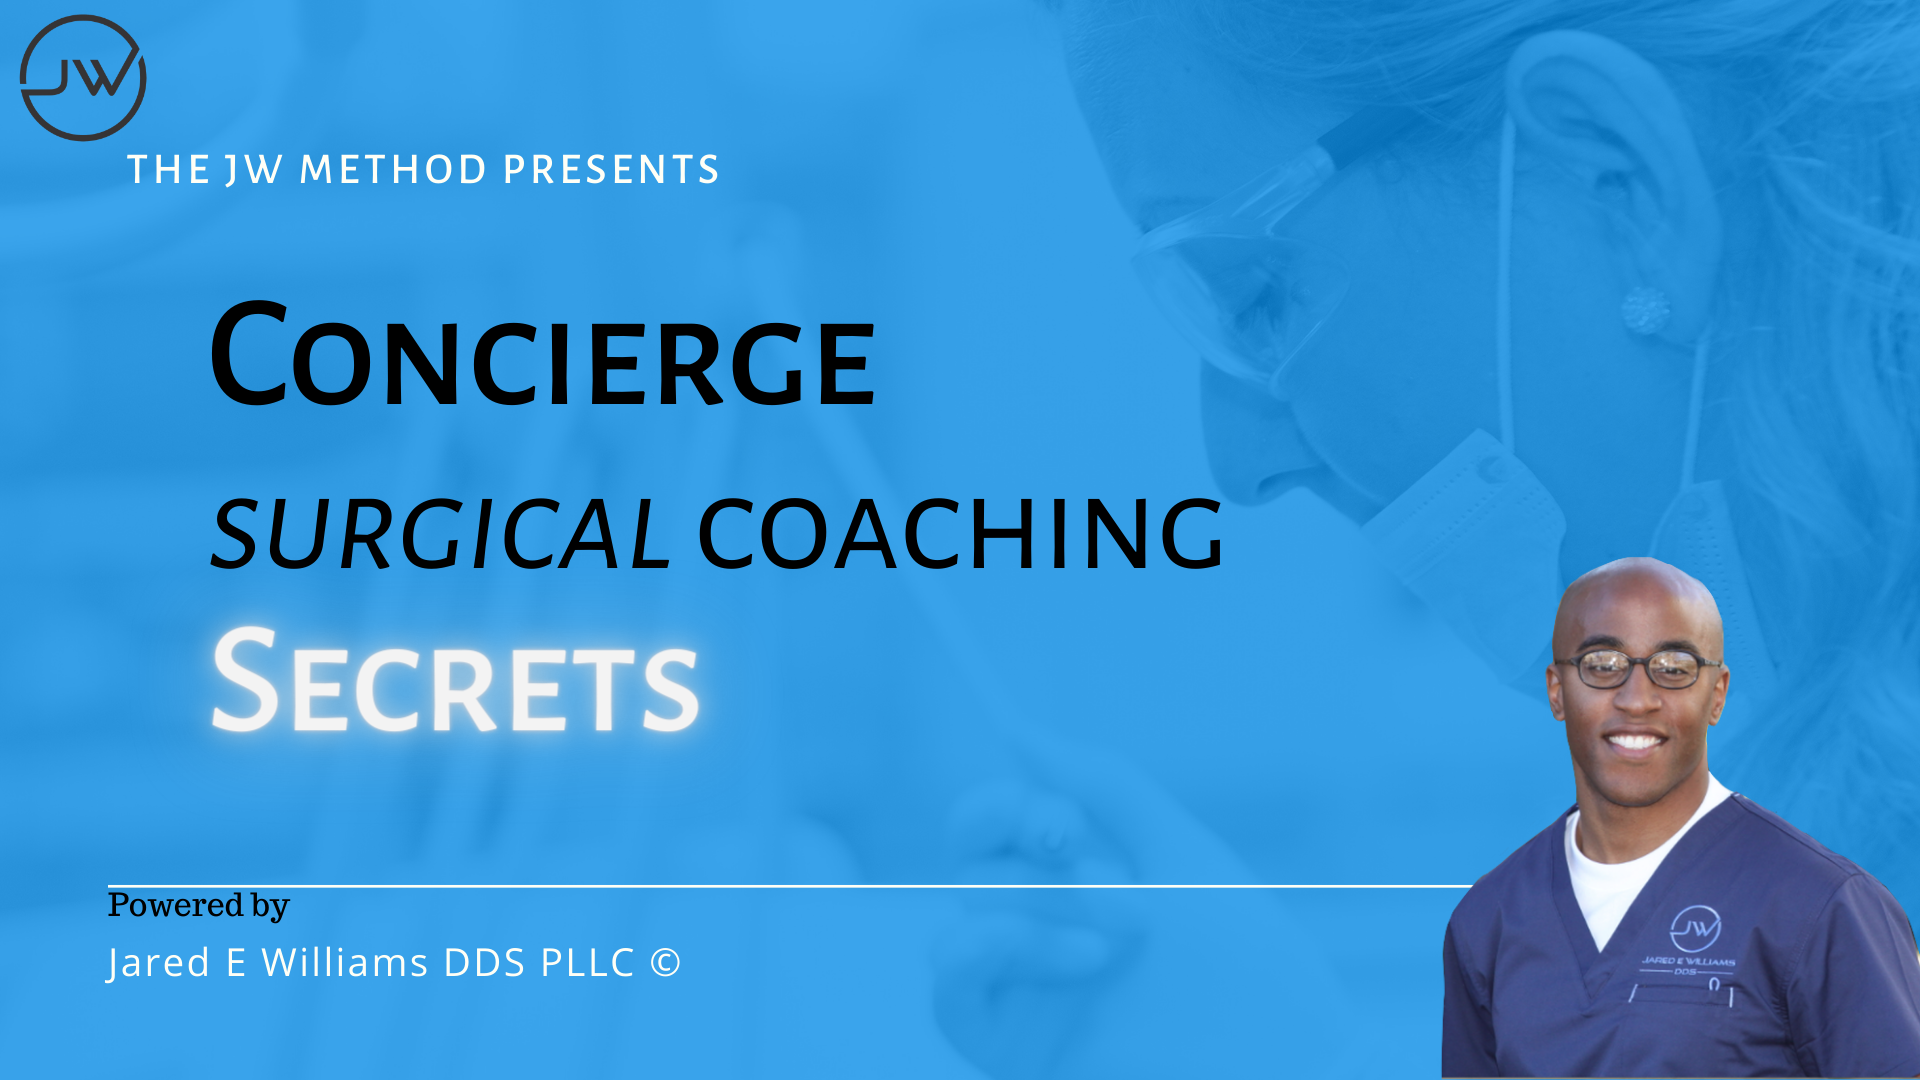 Concierge Surgical Coaching - The JW Method